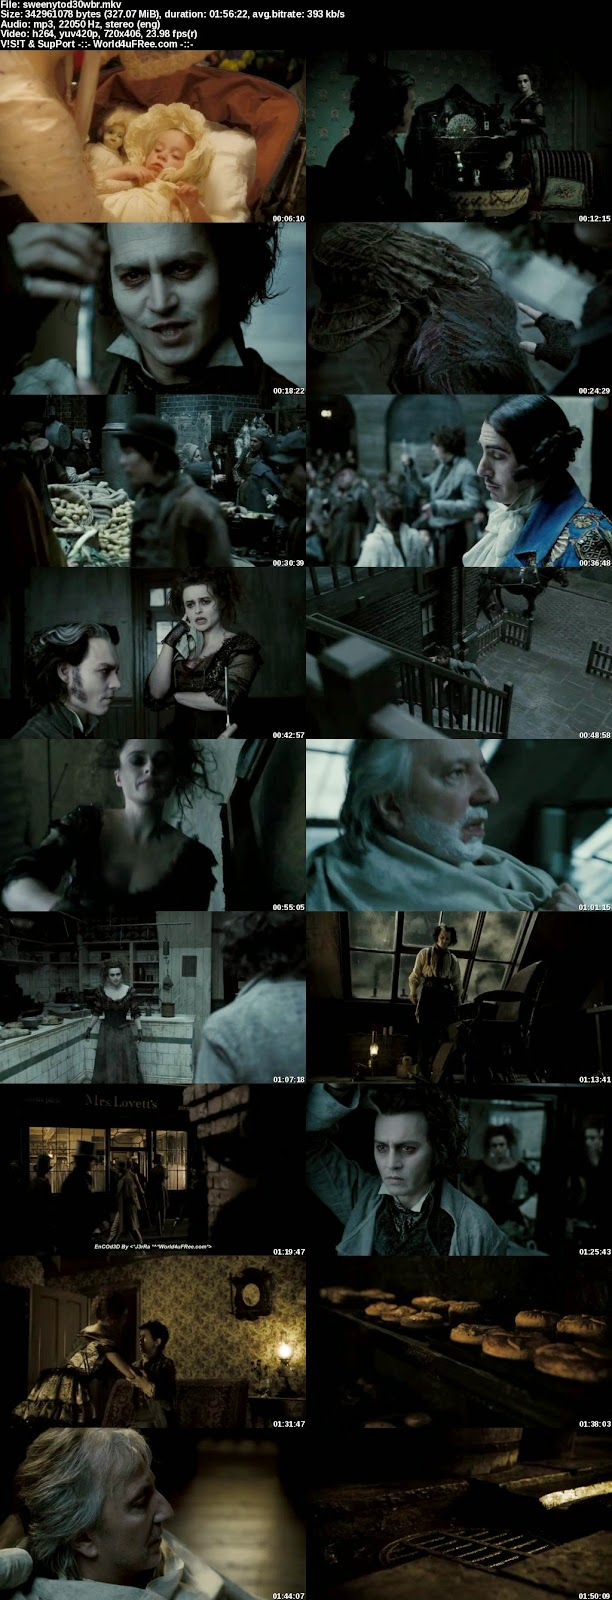 Sweeney Todd: The Demon Barber of Fleet Street (2007) English 480p 450Mb BluRay Download Full Movie